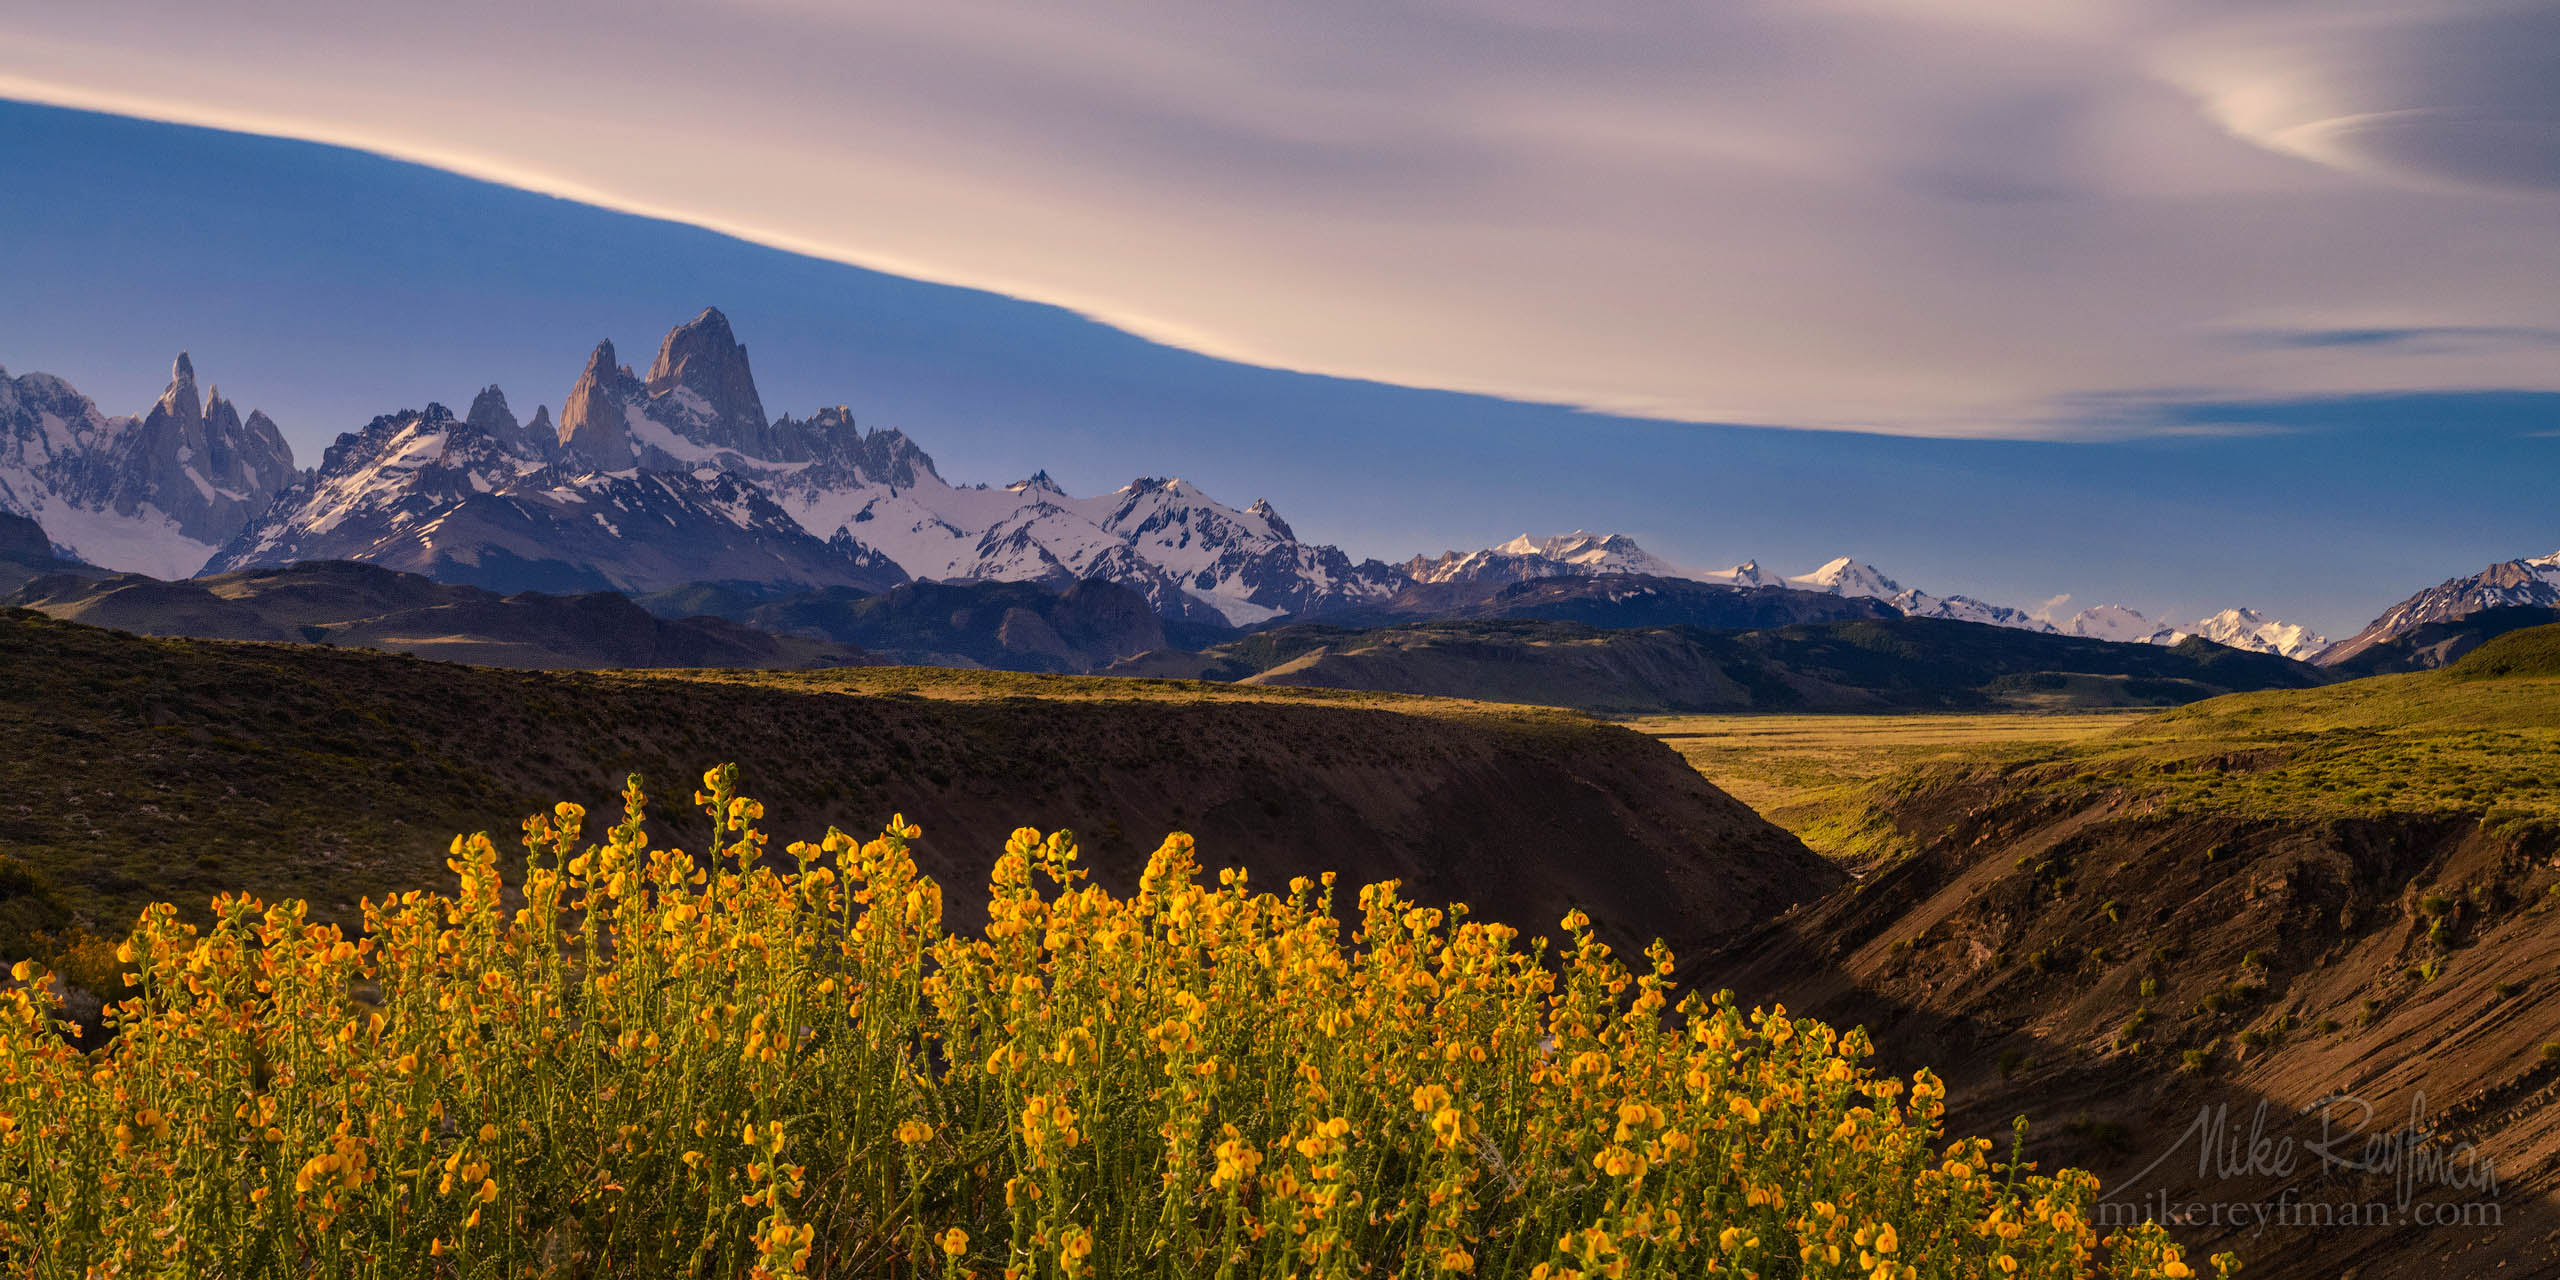 Patagonia splines. Native to Patagonia Paramela flowers (Adesmia boronioides) on Las Vueltas River canyon overlook. Fitzroy and Cerro Torre massifs on the background. P12-MRD8C3951 - Selected panoramic images with 2:1 aspect ratio - Mike Reyfman Photography